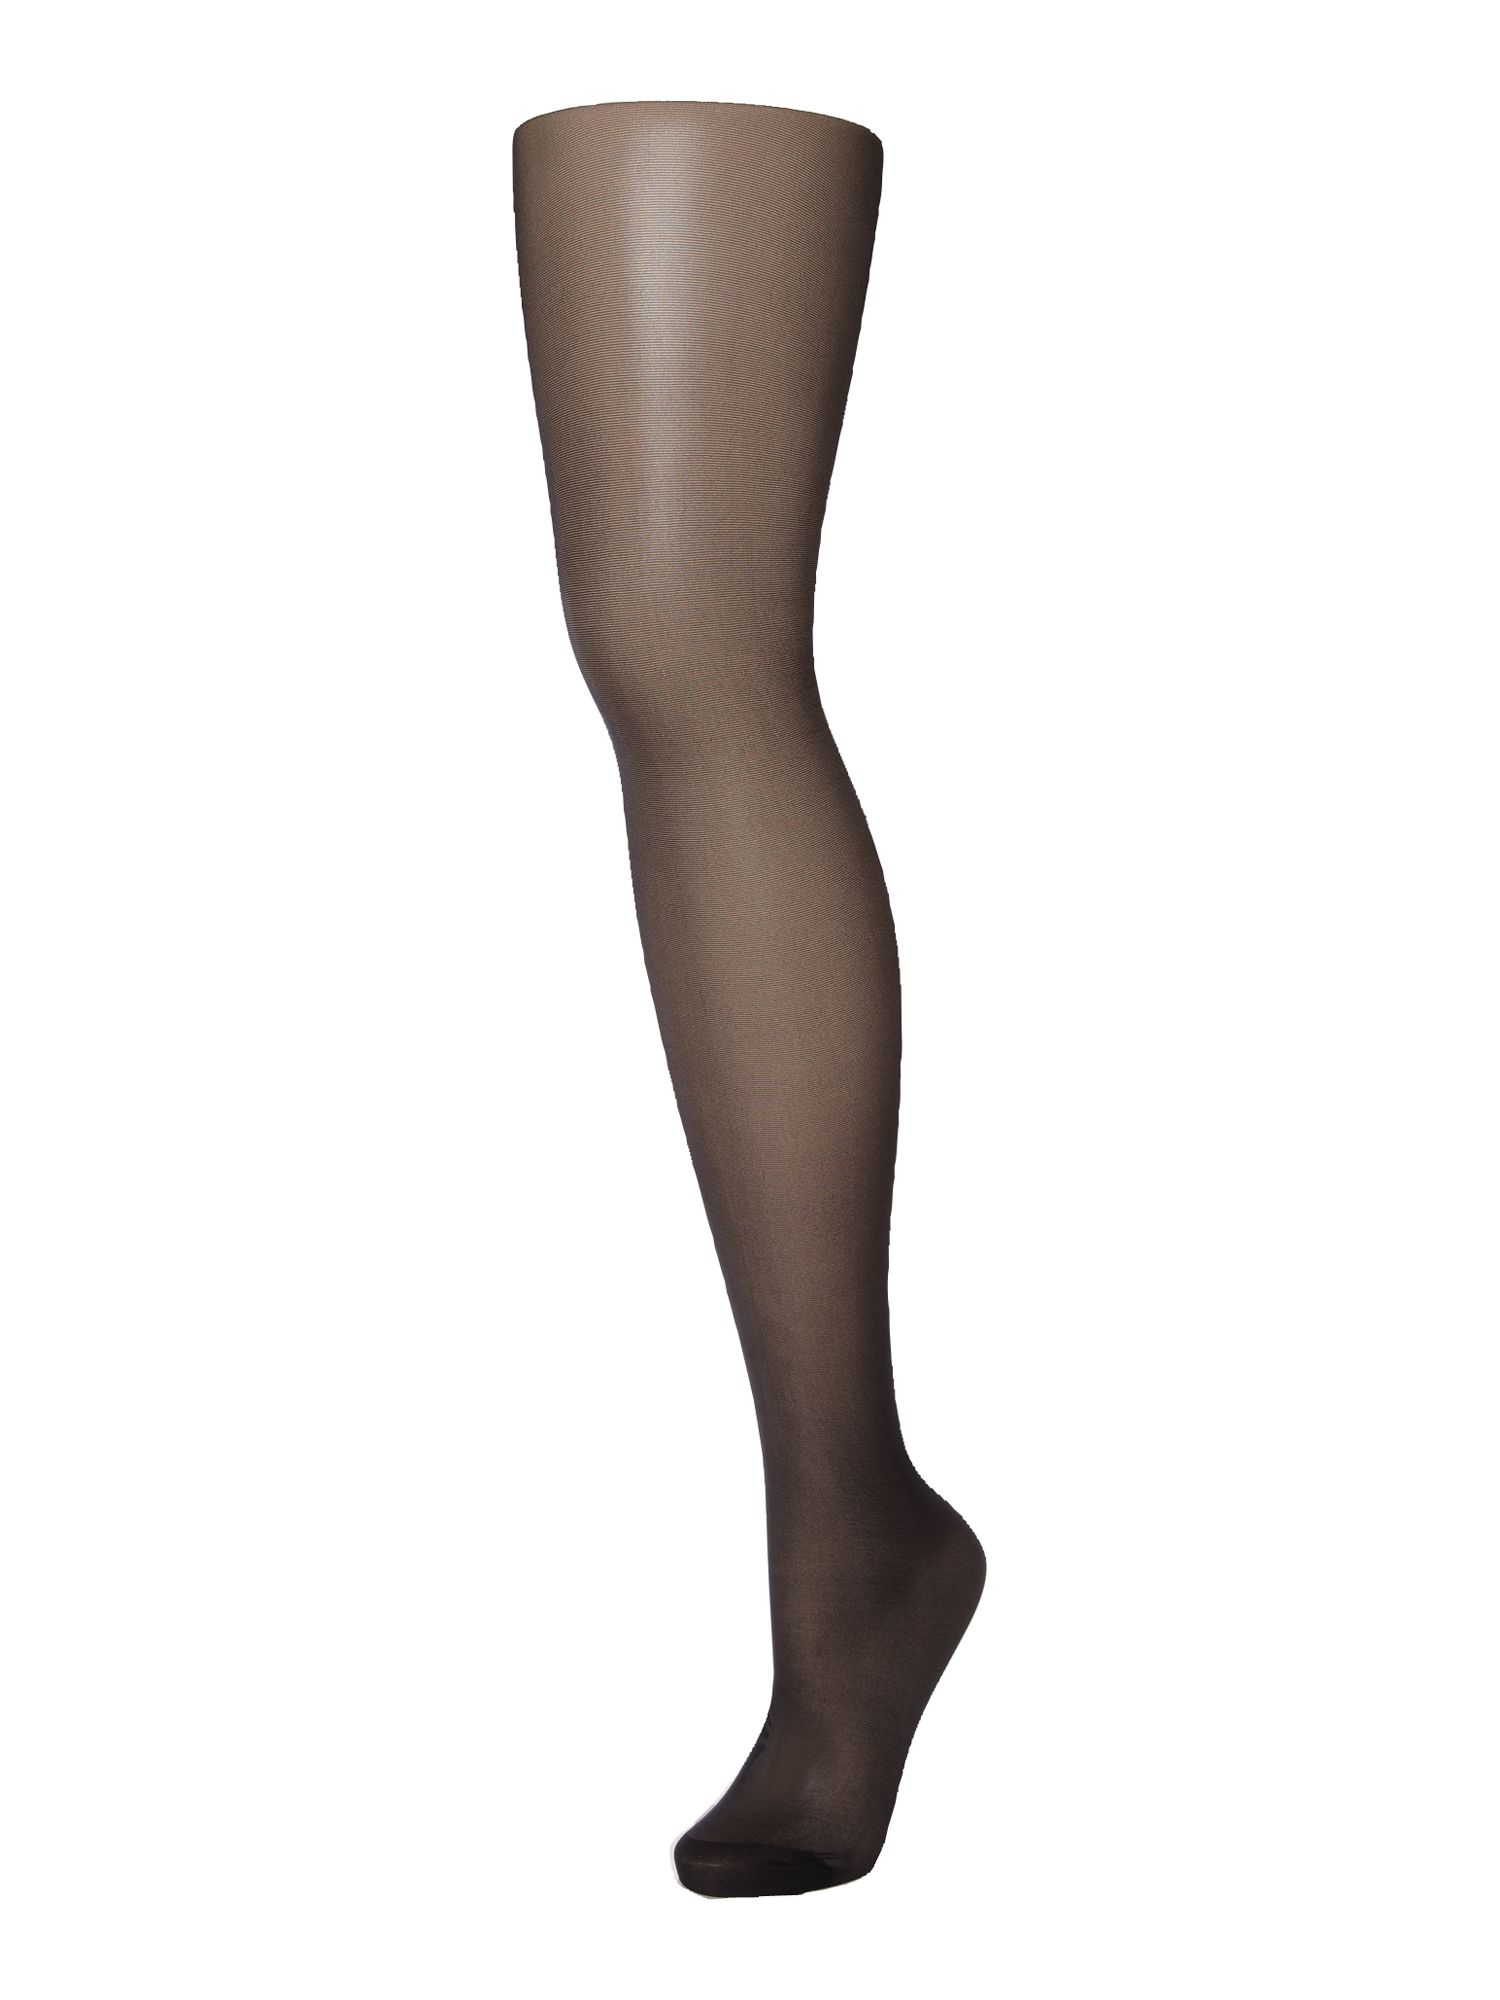 Tummy & bum shaper tights